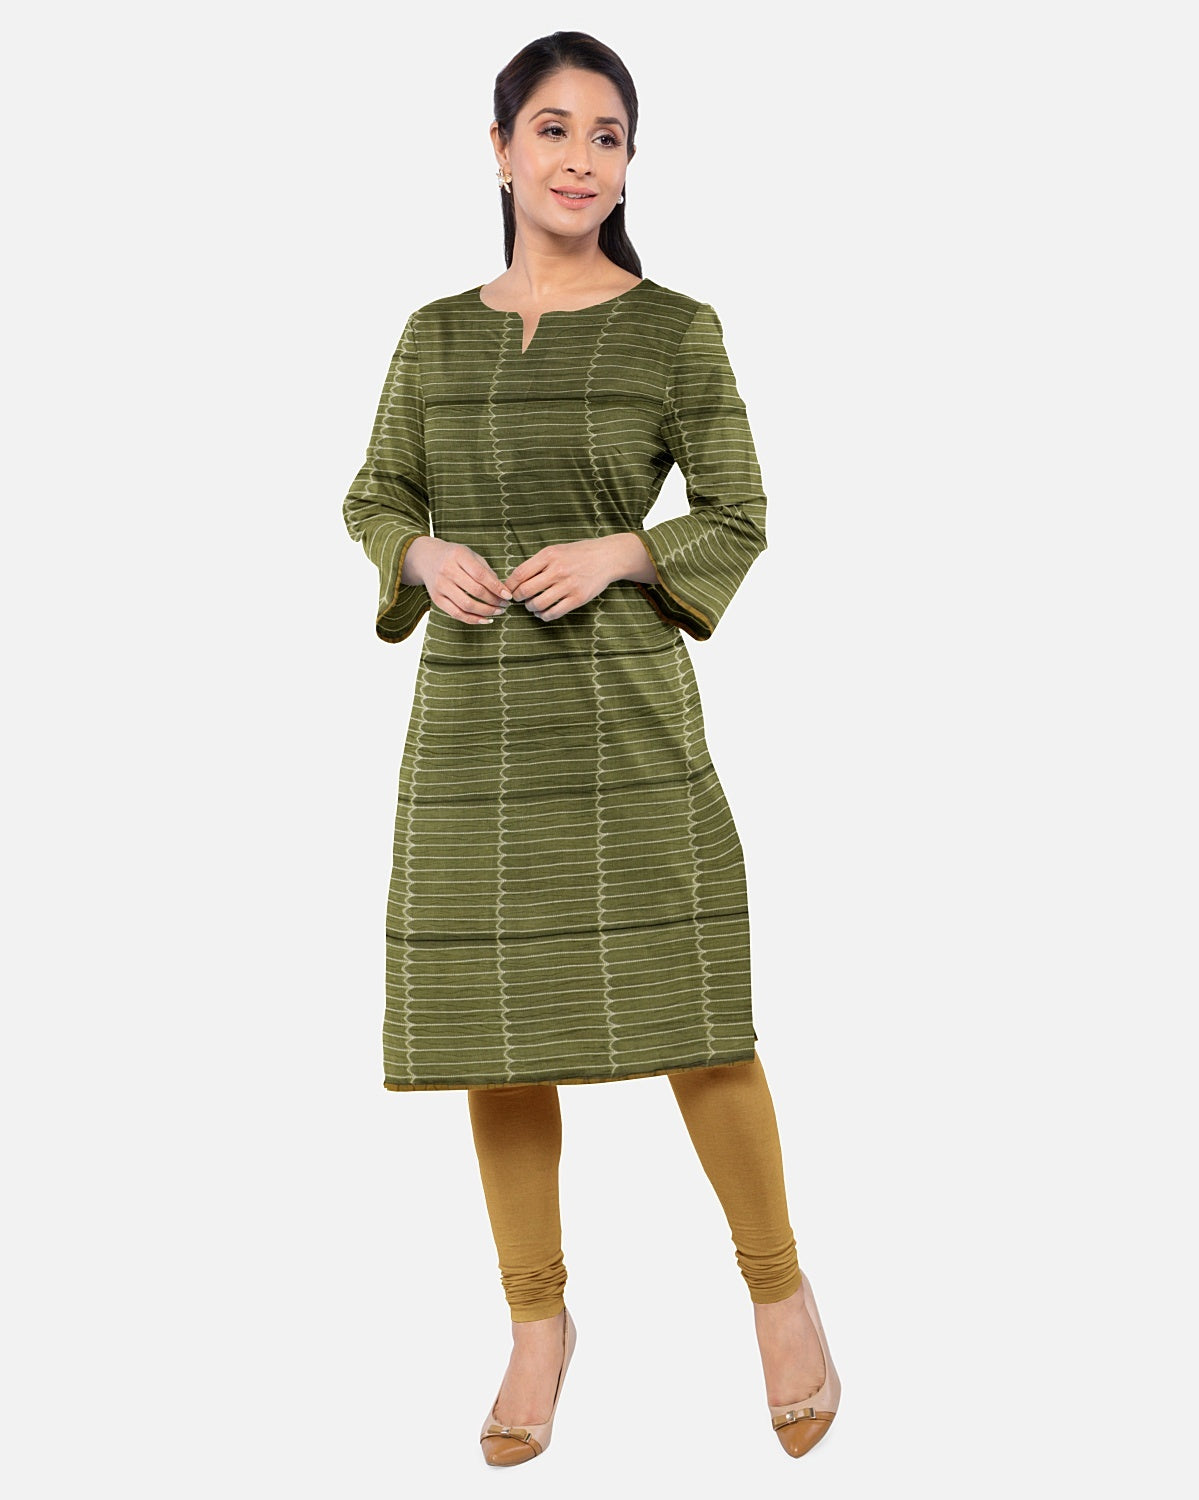 Olive Green & Rust Shibori Suit Fabric Set